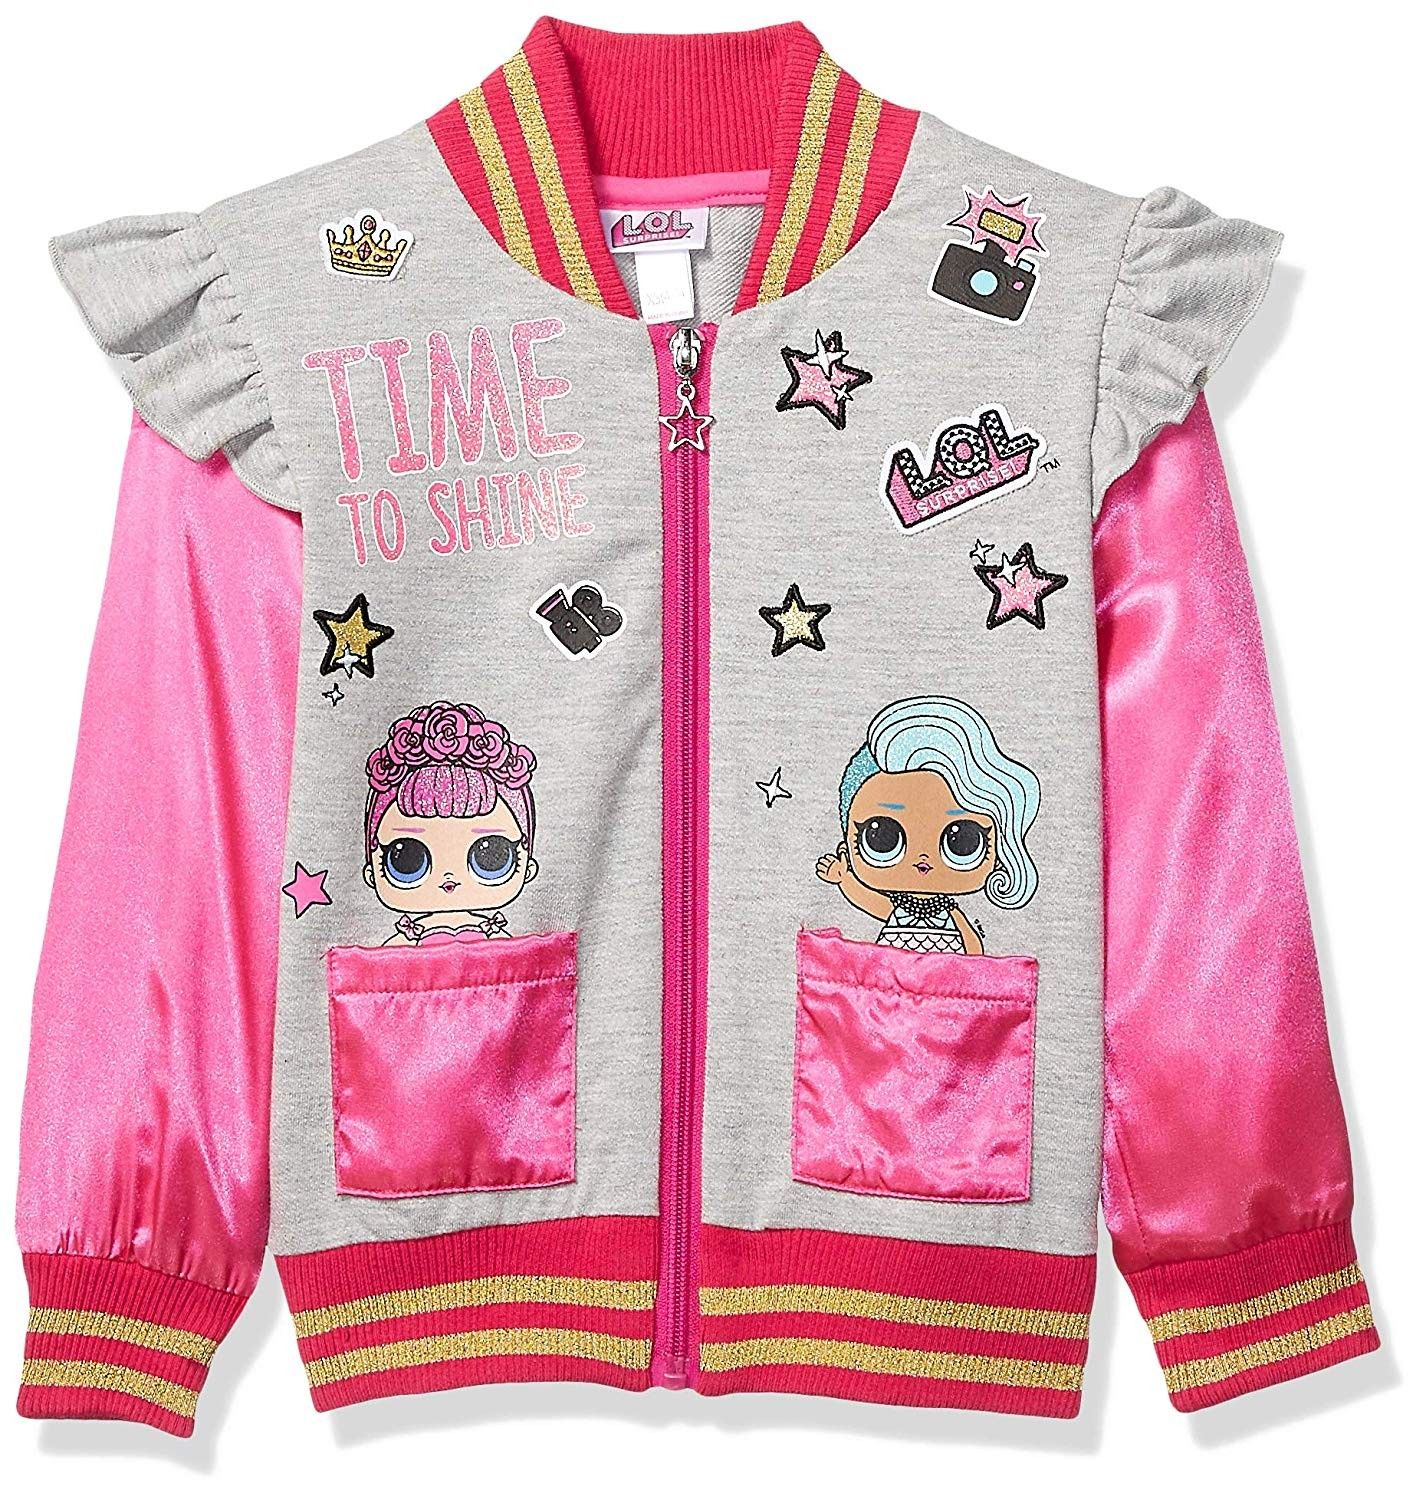 Girls Lol Time To Shine Bomber Jacket Multicolor Cr18oe5n34h Size X Small 4 5 Kids Outdoor Clothes Long Knit Sweater Bomber Jacket [ 1500 x 1426 Pixel ]